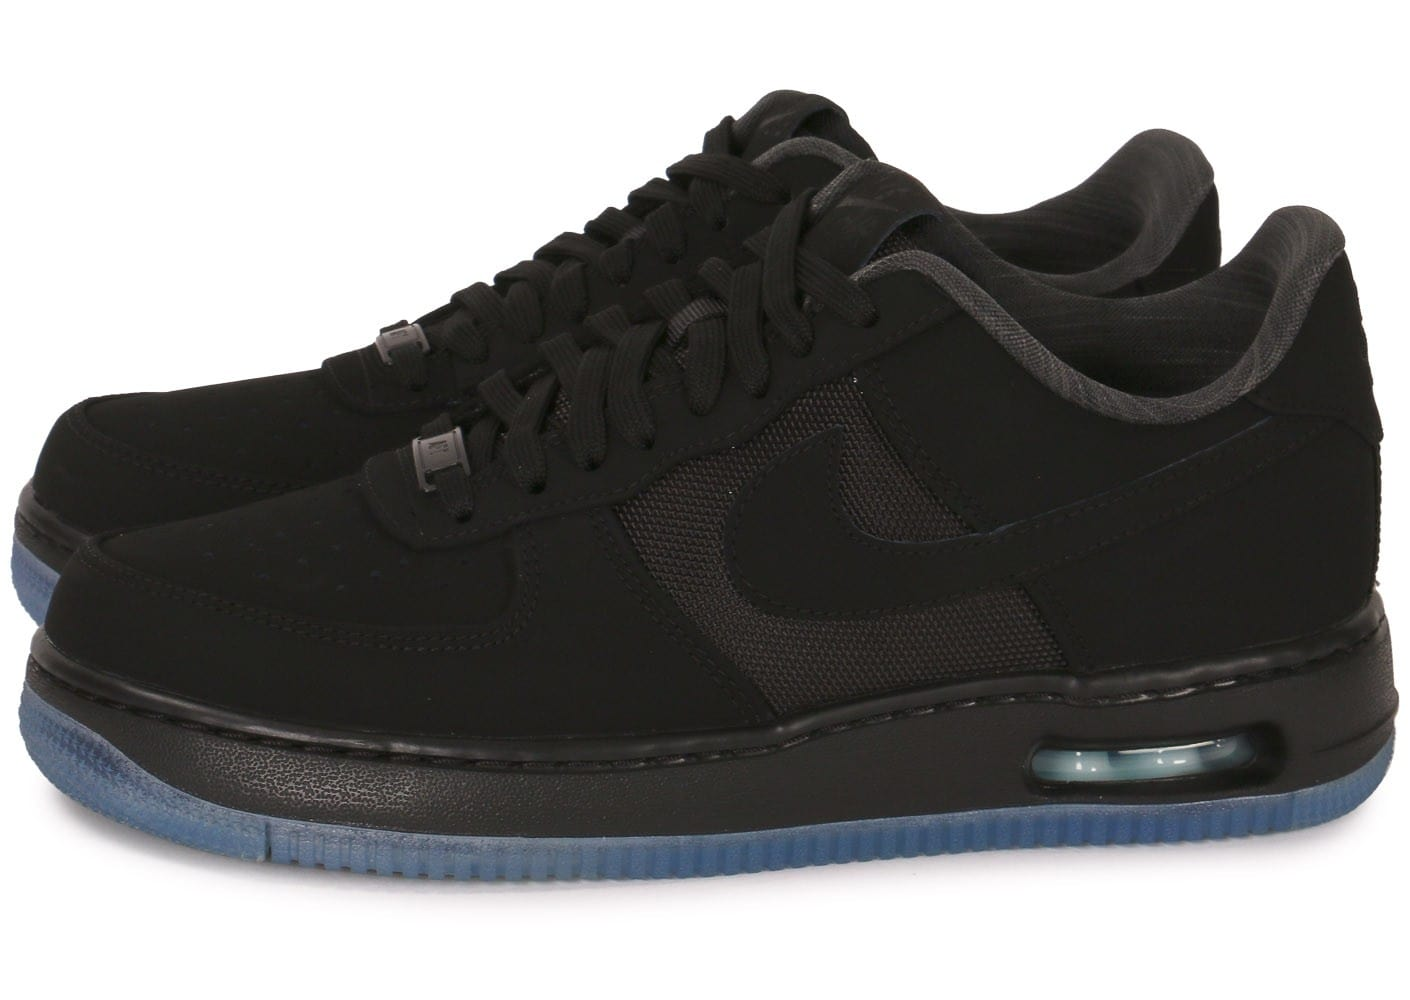 Nike Air Force 1 Elite Noire Chaussures Baskets homme